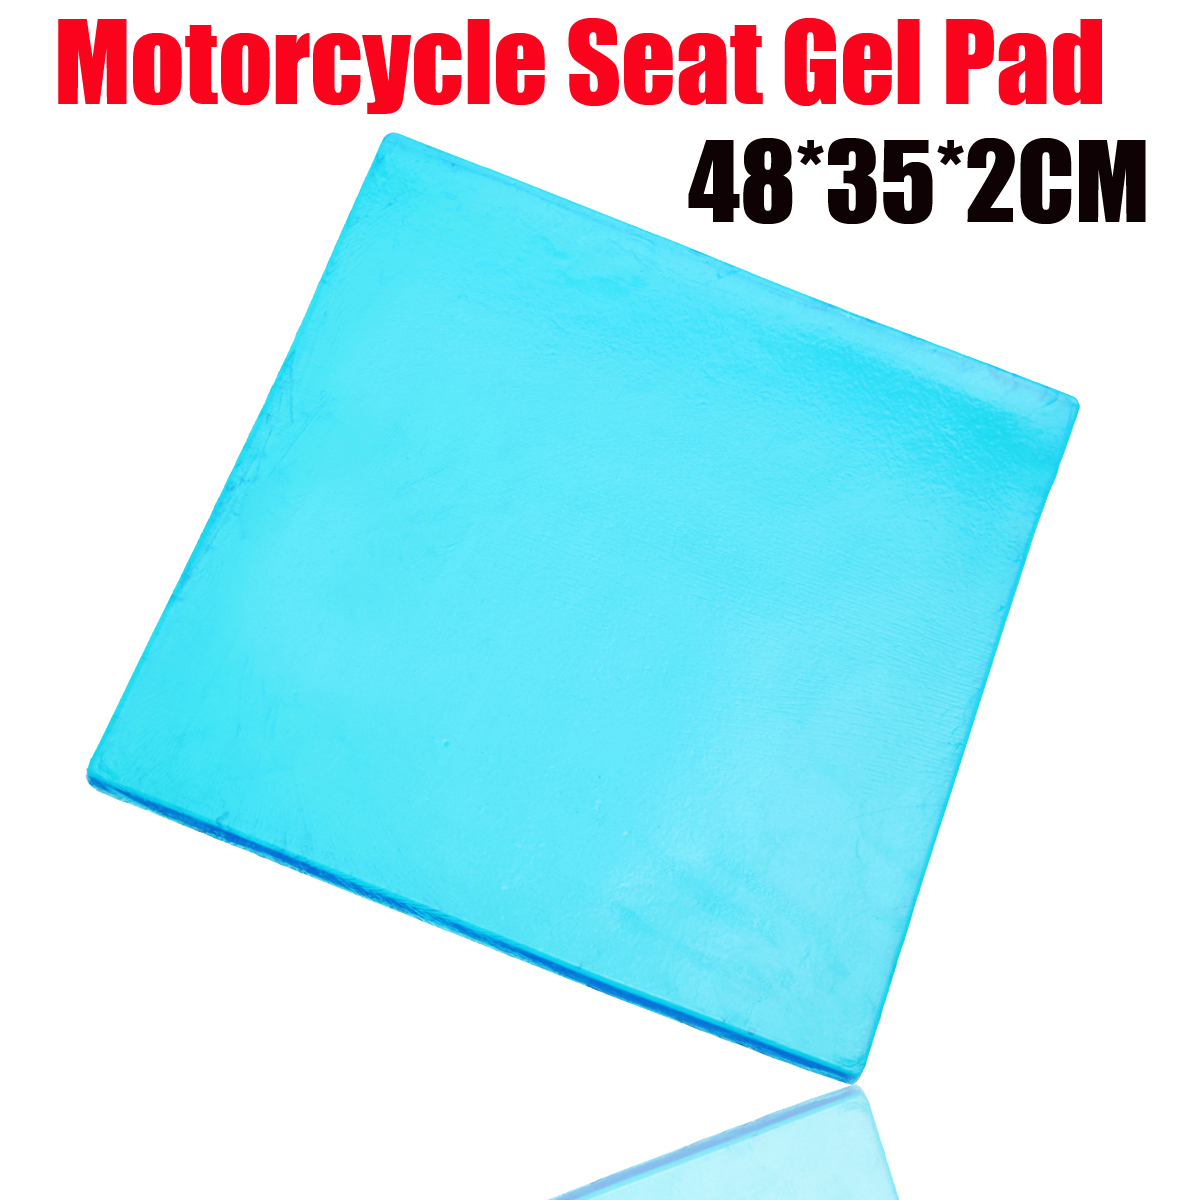 New DIY Modified 2cm Thickness Damping Silicone Gel Pad Motorcycle Seat Cushion Comfortable Mat shock absorption Mats 48x35cm